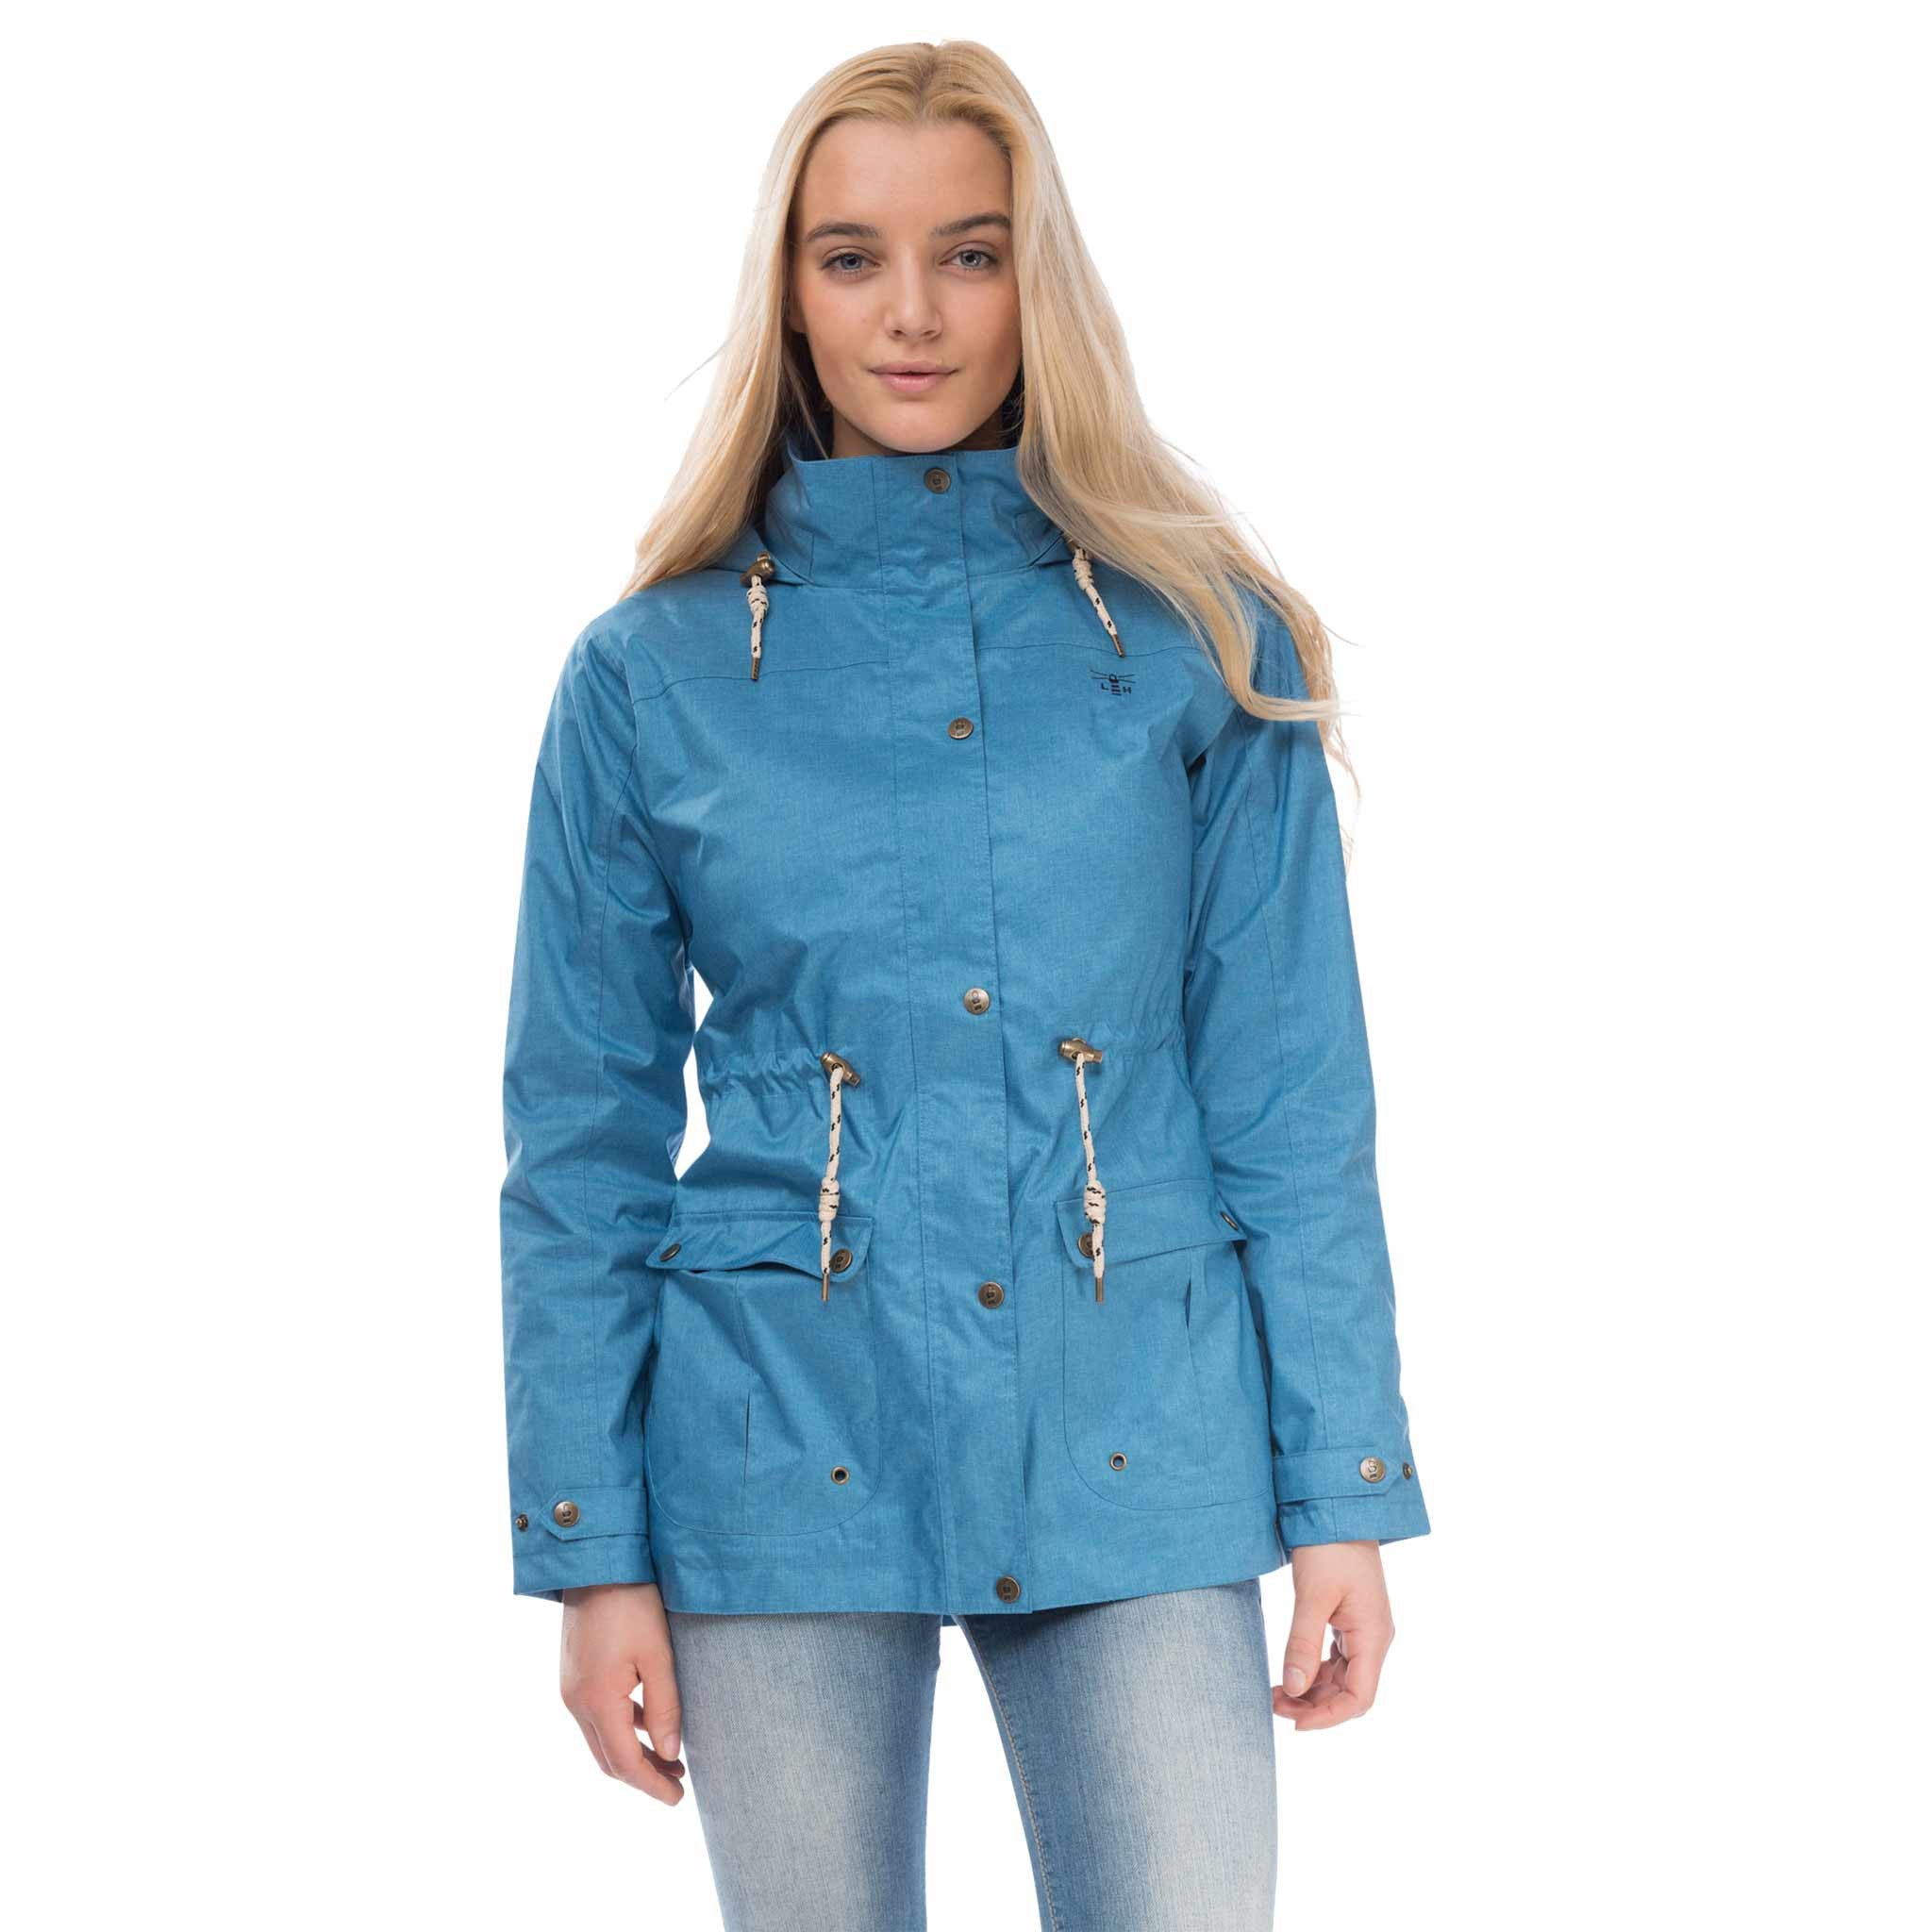 Isla Womens Waterproof Jacket in Marine Navy, Modelled Front View | Lighthouse